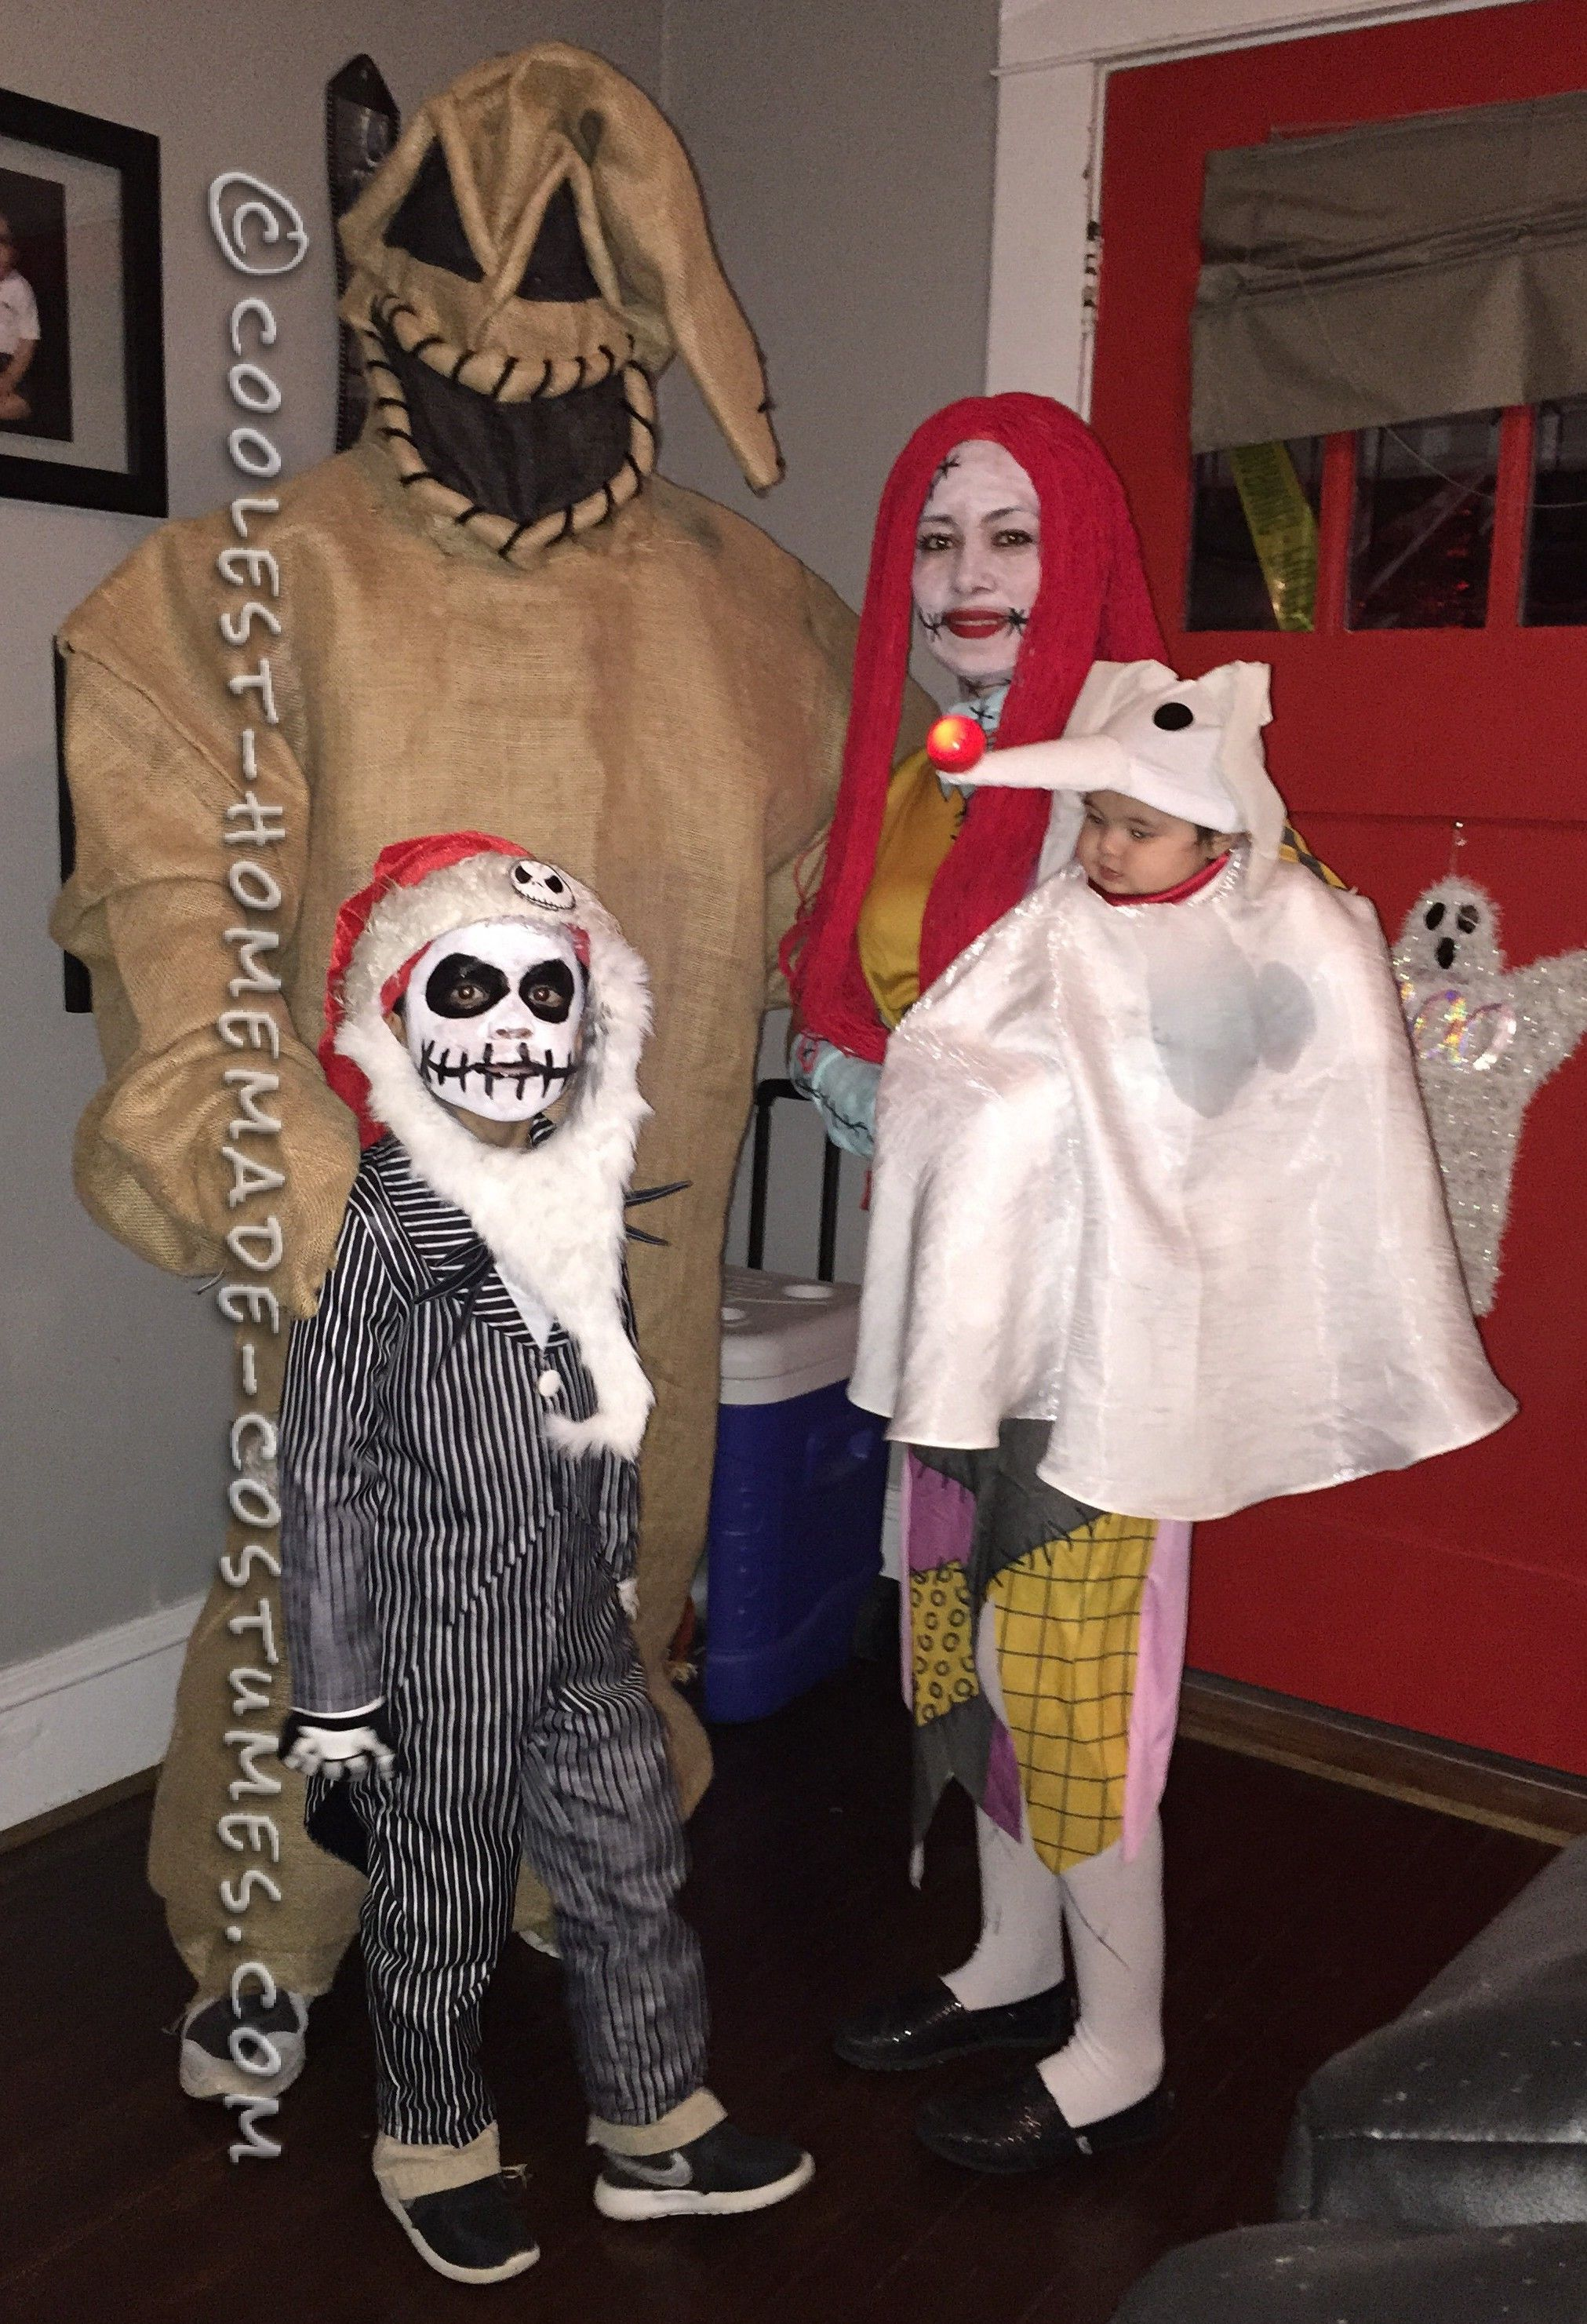 family nightmare before christmas theme baby zero costume coolest homemade costumes - Nightmare Before Christmas Halloween Costume